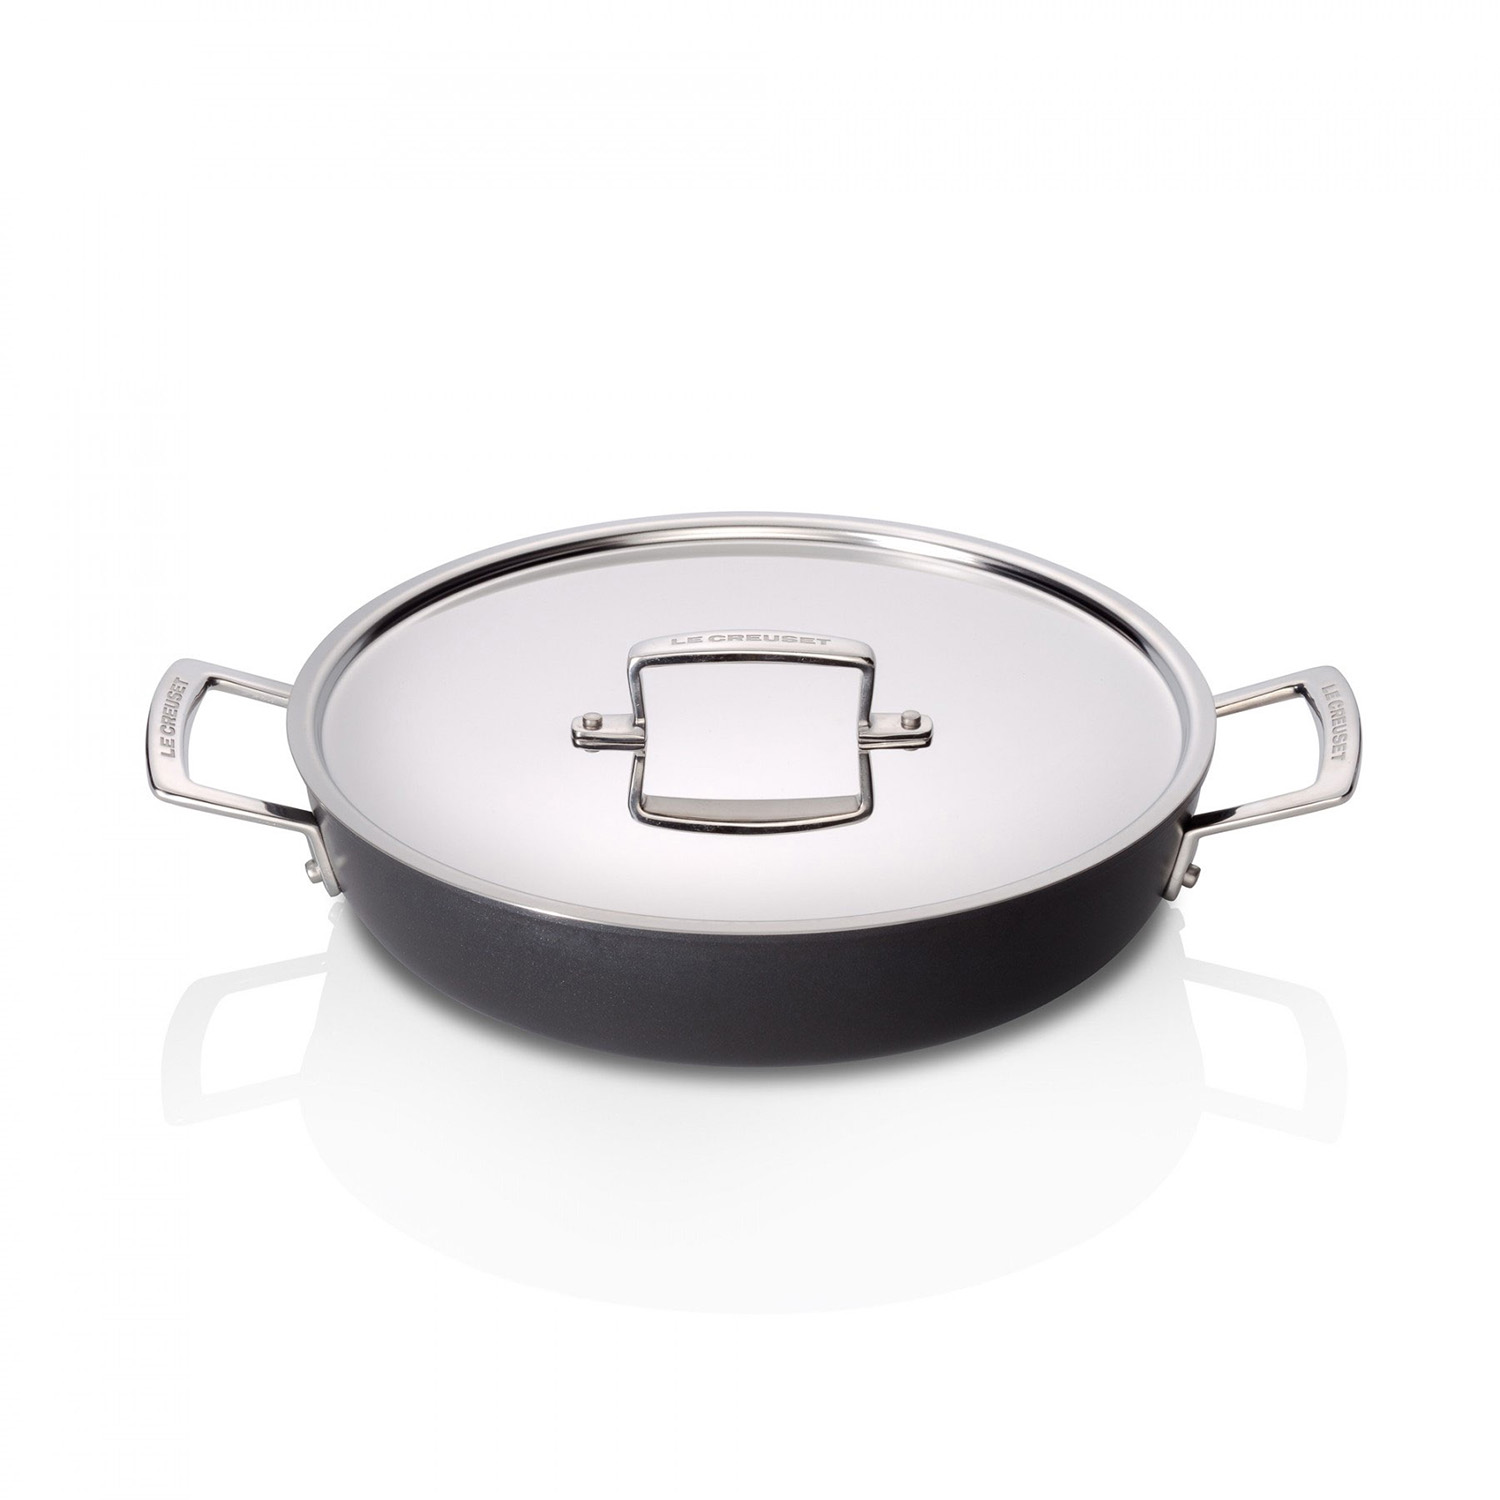 Le Creuset Professional Hard Anodised Shallow Casserole, 28cm